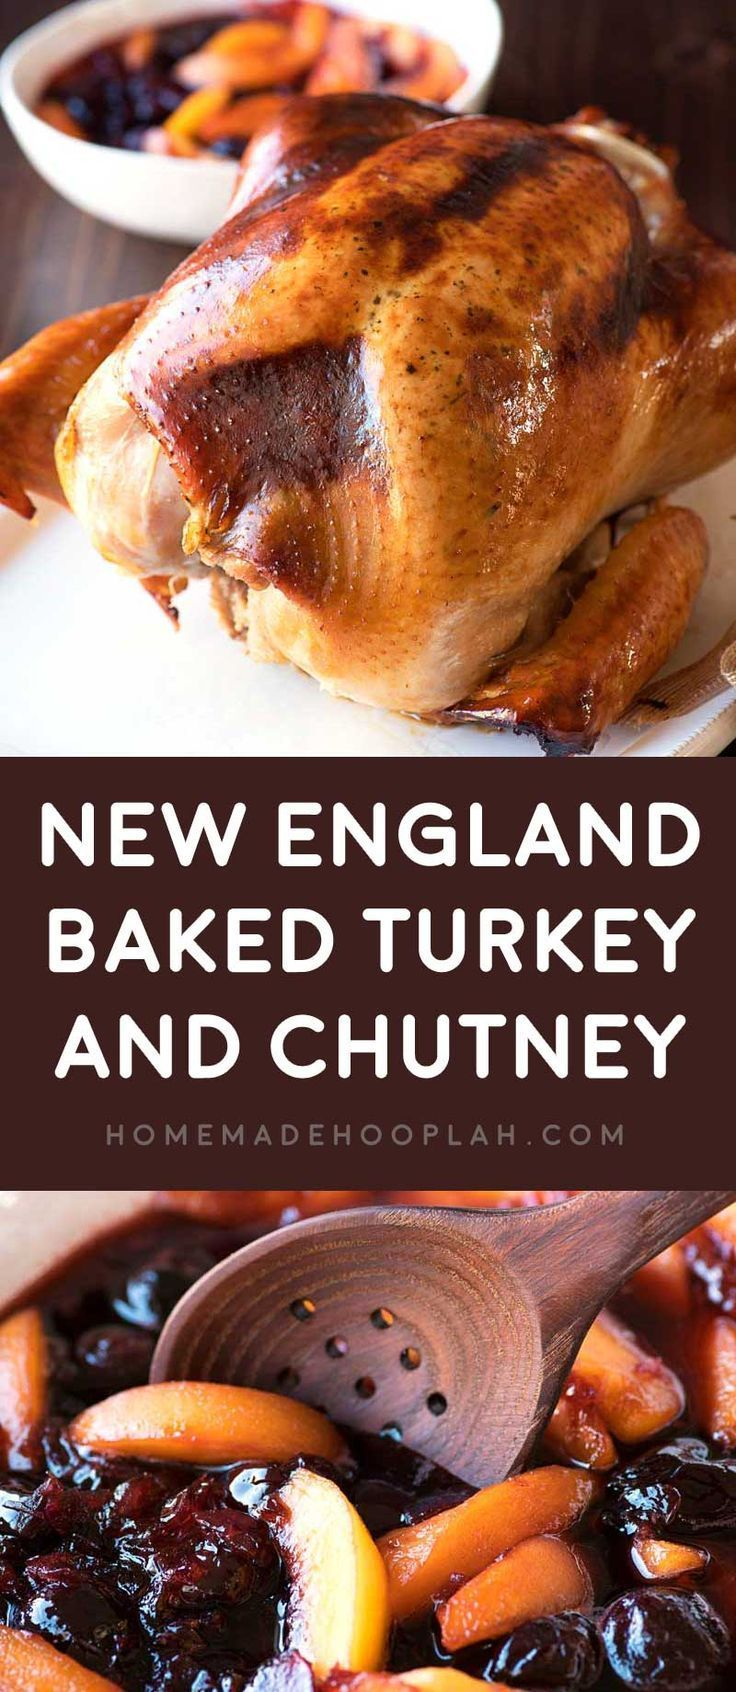 New England Baked Turkey and Chutney! A fool-proof baked turkey that's treated in a maple brine and served with a cherry and peach chutney. Perfect for both experienced and first-time cooks! | HomemadeHooplah.com